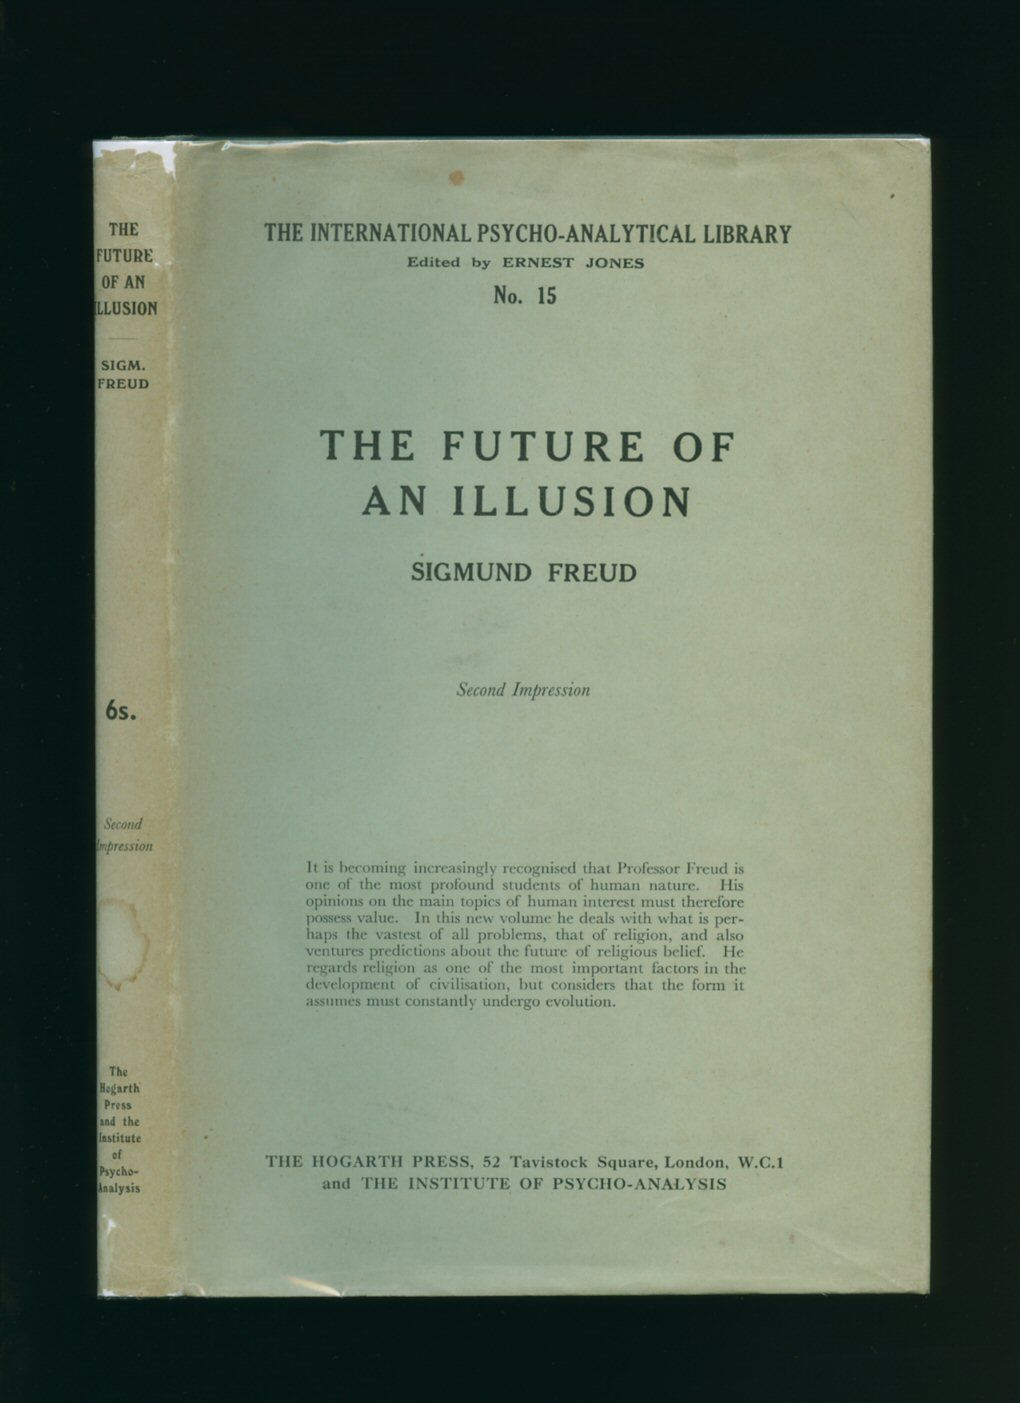 an analysis of the sigmund freuds the future of an illusion The future of an illusion (german: die zukunft einer illusion) is a 1927 work by sigmund freud, describing his interpretation of religion's origins, development, and its future he provides a psychoanalysis of religion , which he viewed as a false belief system.